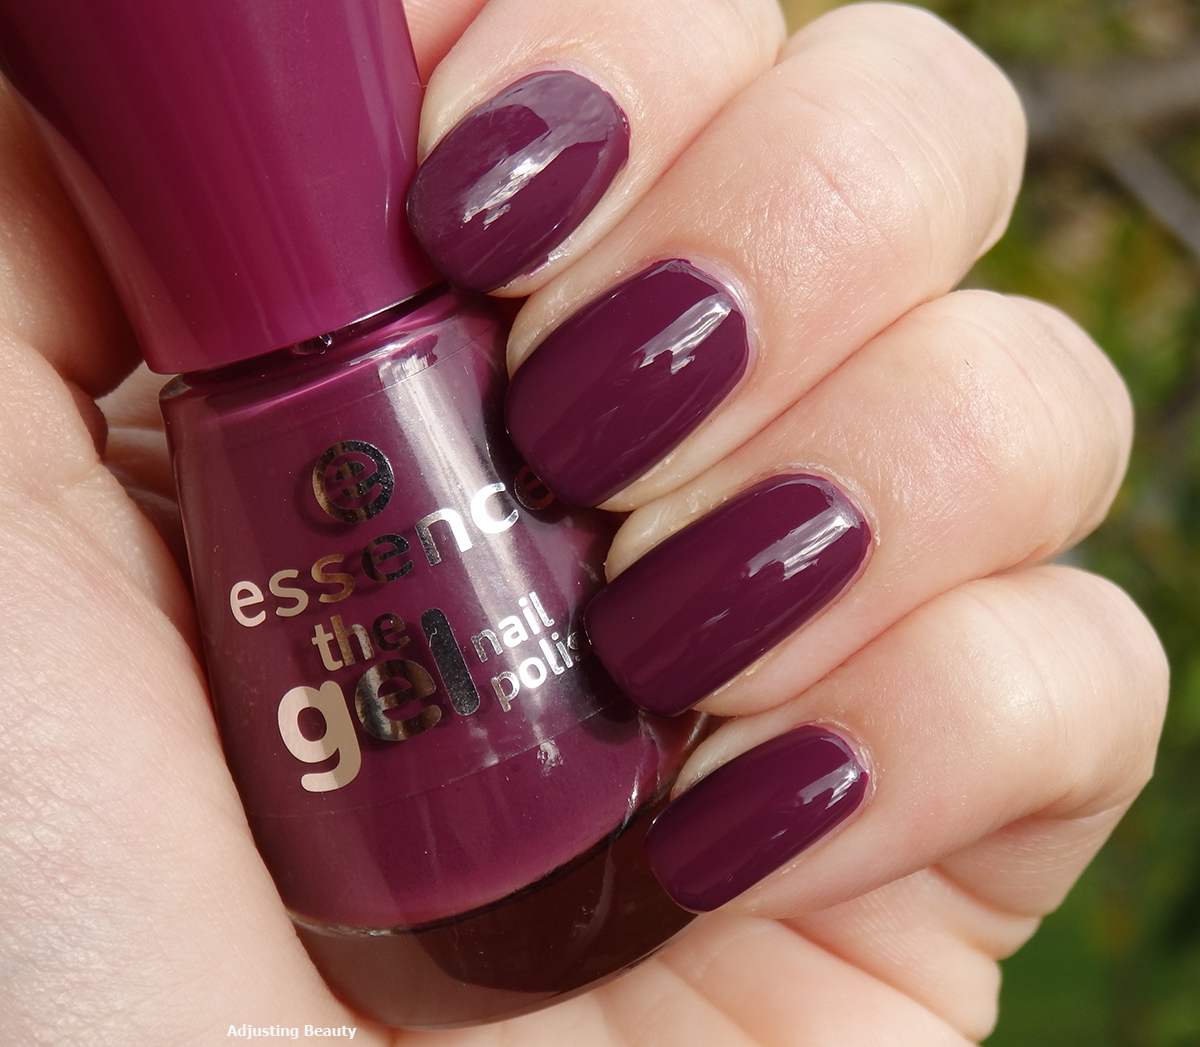 Gel Nail Polishes: Review: Essence The Gel Nail Polish (52 Amazed By You